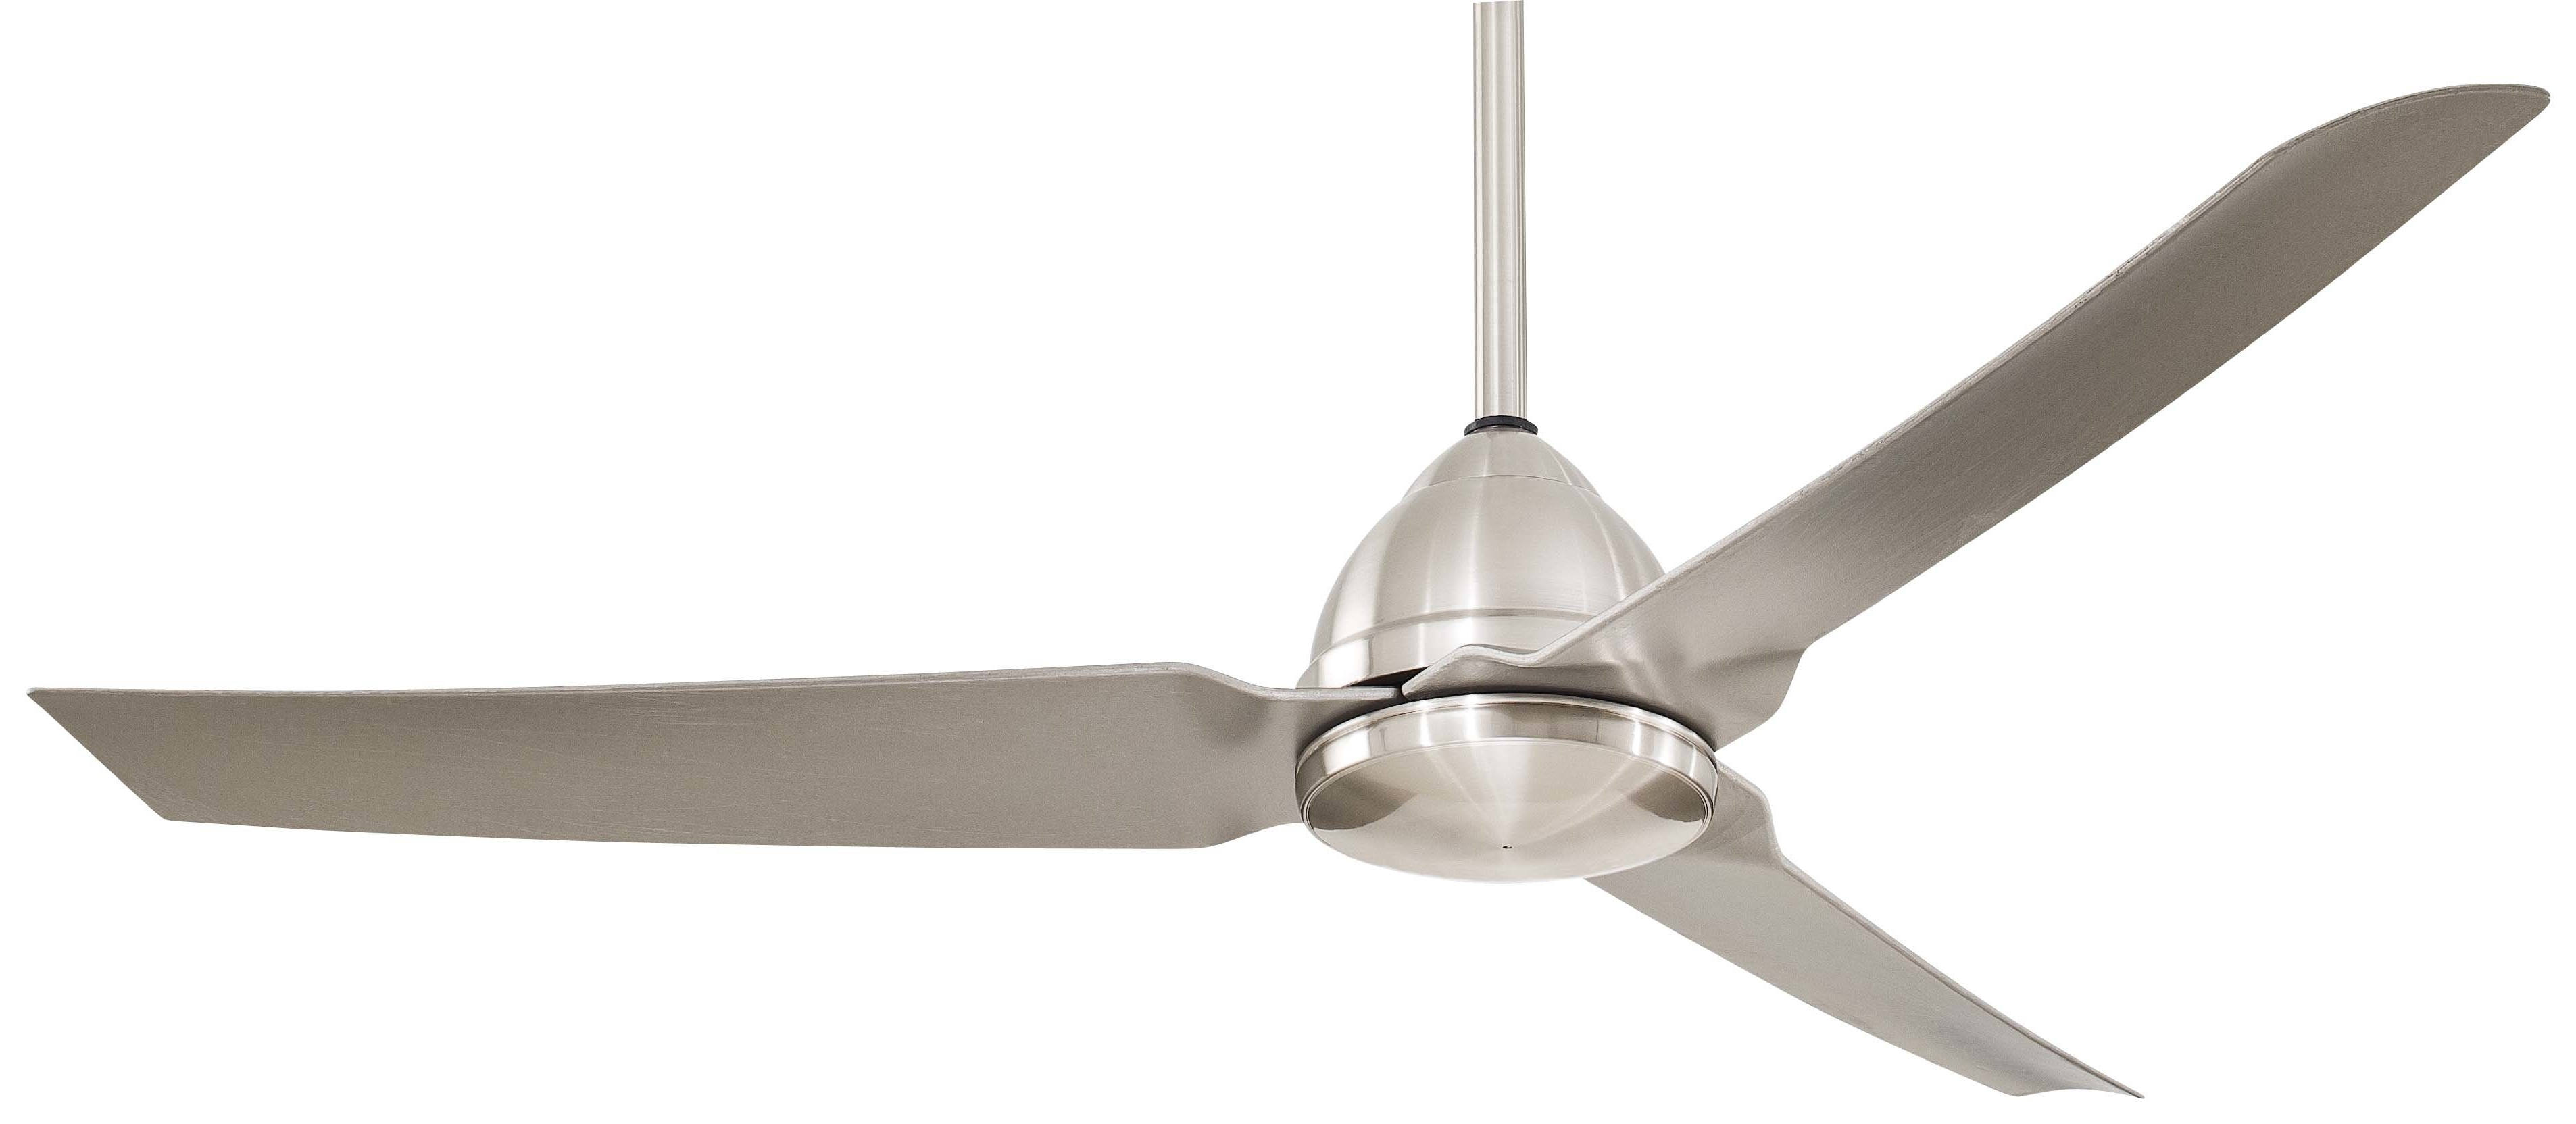 Heavy Duty Outdoor Ceiling Fans For Most Recently Released Outdoor Ceiling Fans You'll Love (Gallery 11 of 20)